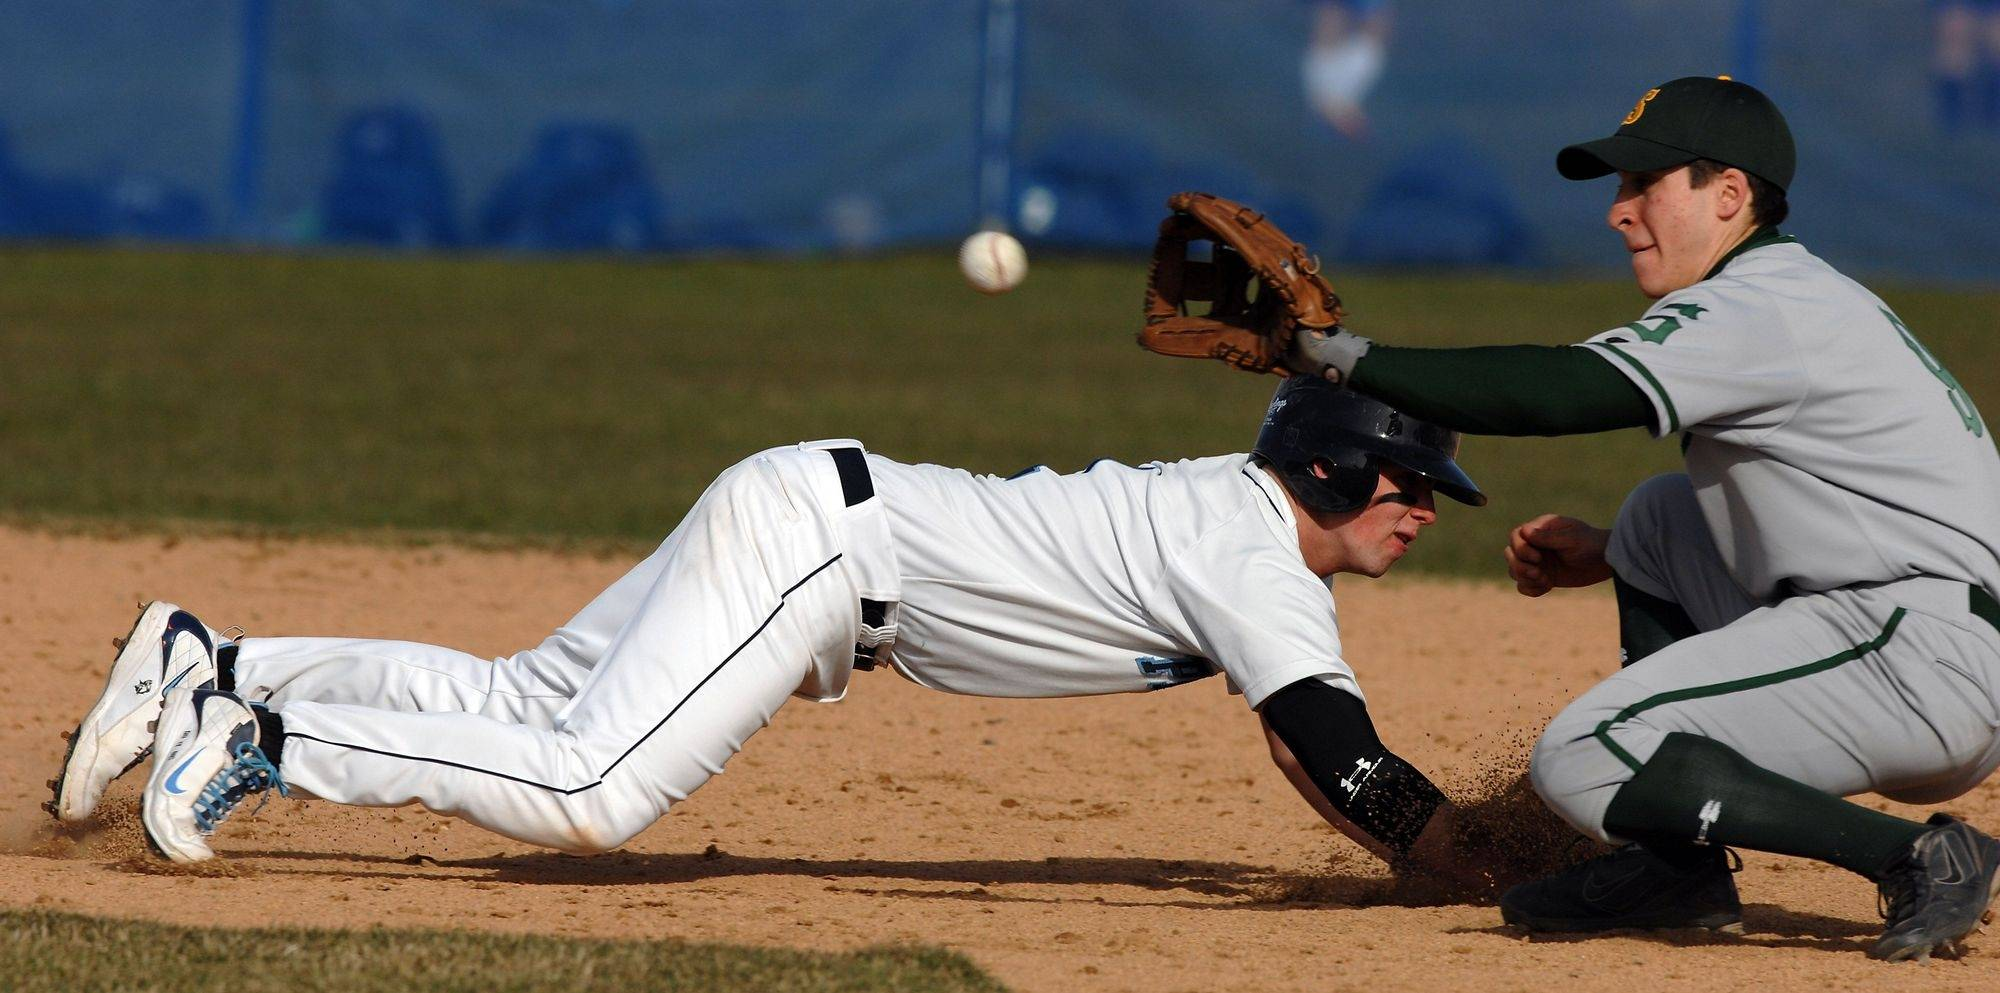 Prospect's Jon Coen slides safely back into second as Stevenson's Kyle Ruchim tries to pick him off in boys baseball game action on Monday at Prospect High School.